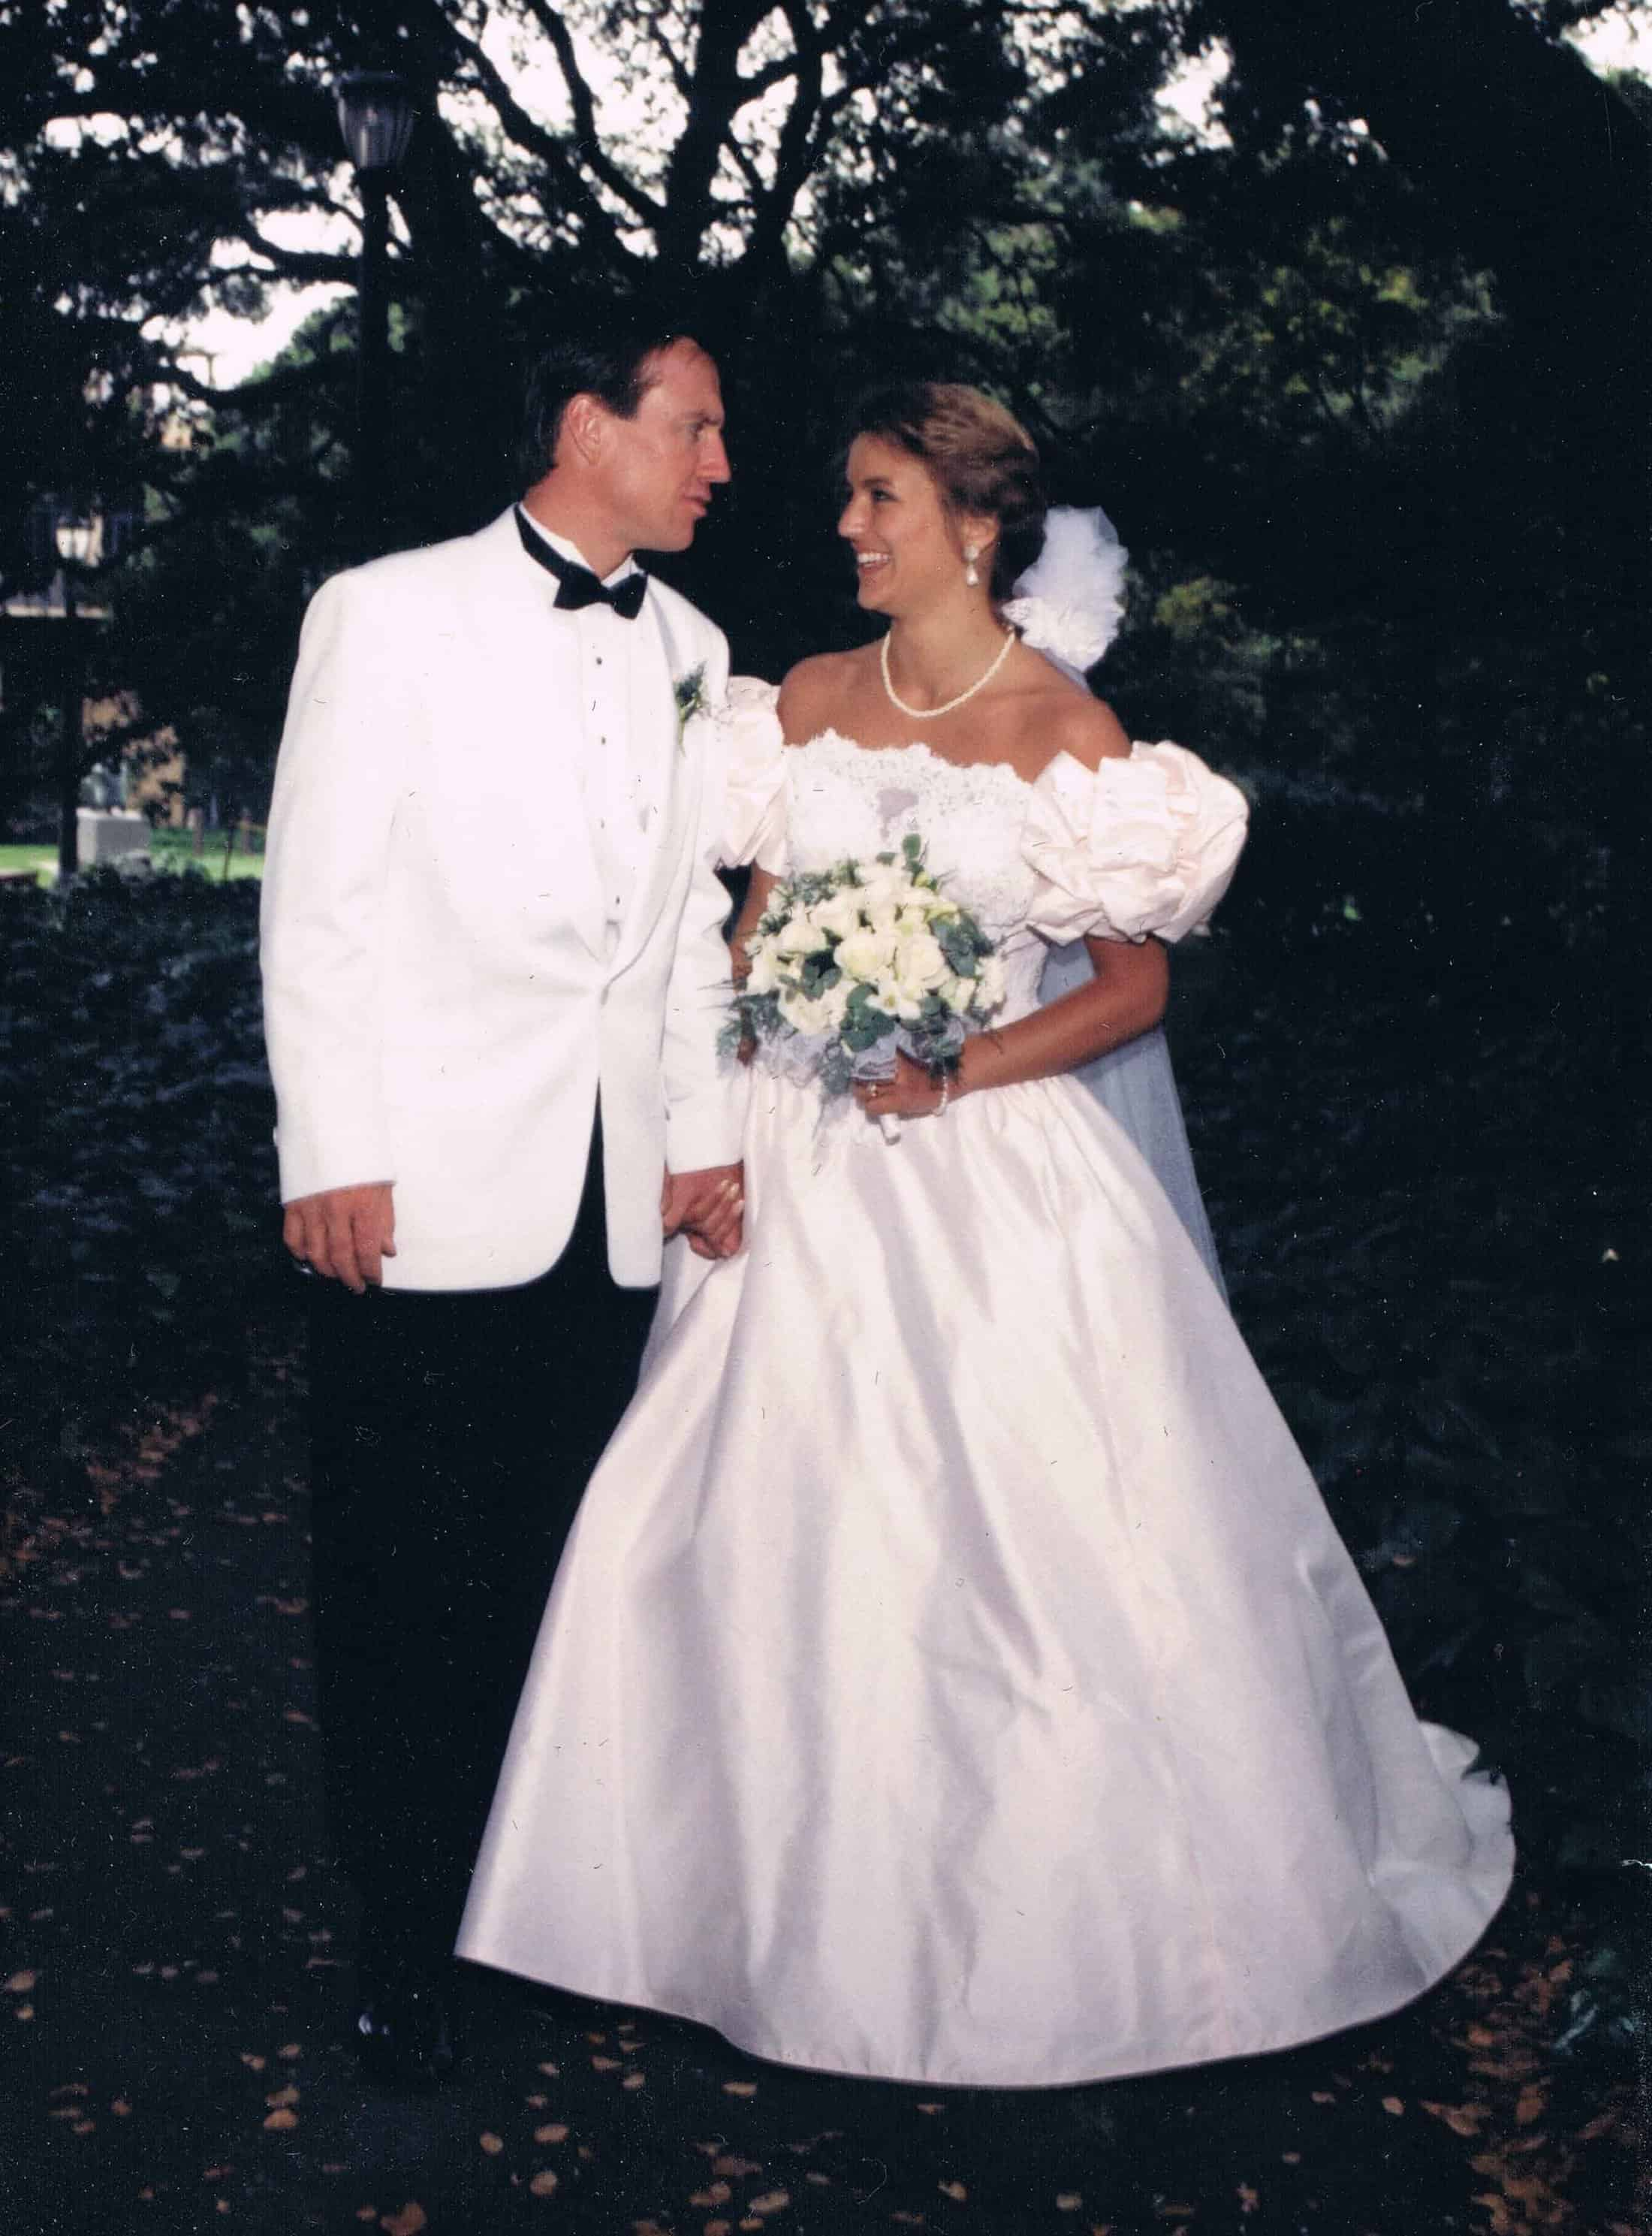 Married to Topher July 6, 1991